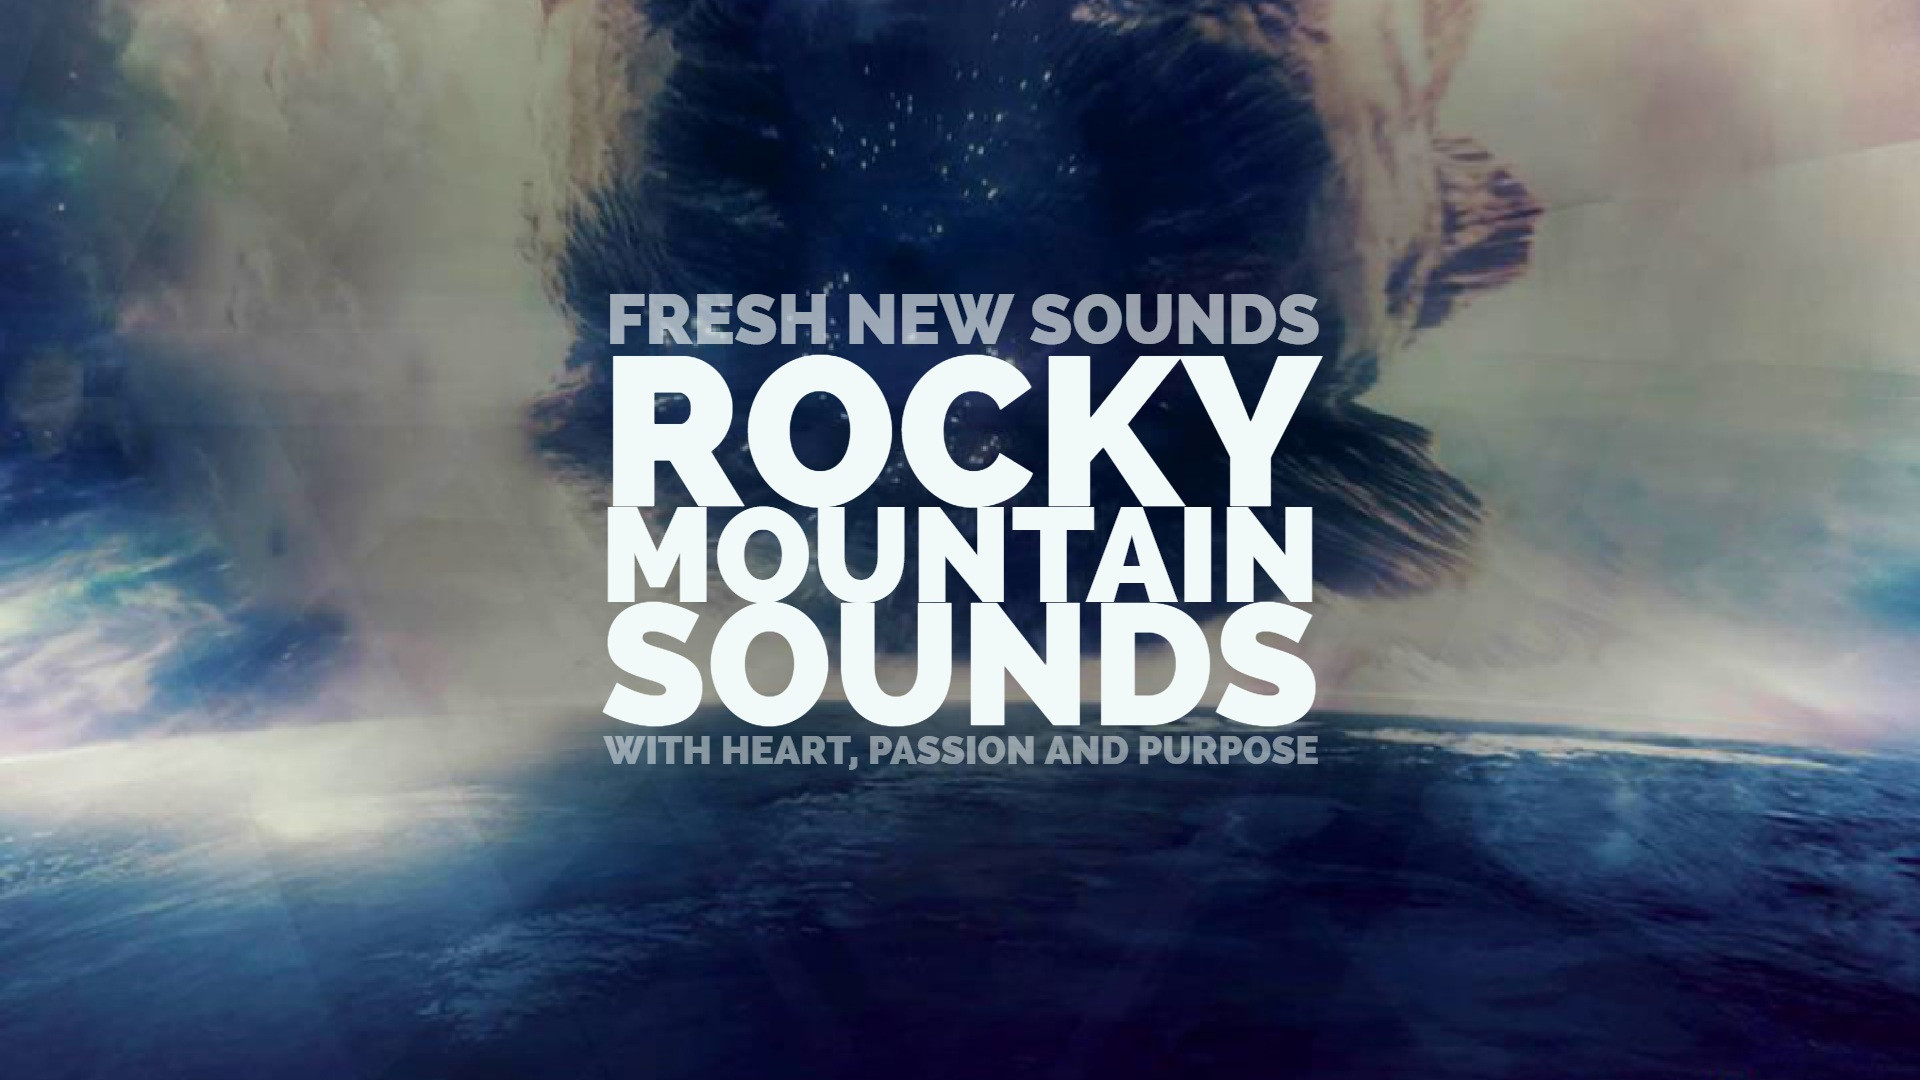 Rocky Mountain Sounds | Fresh New Sounds